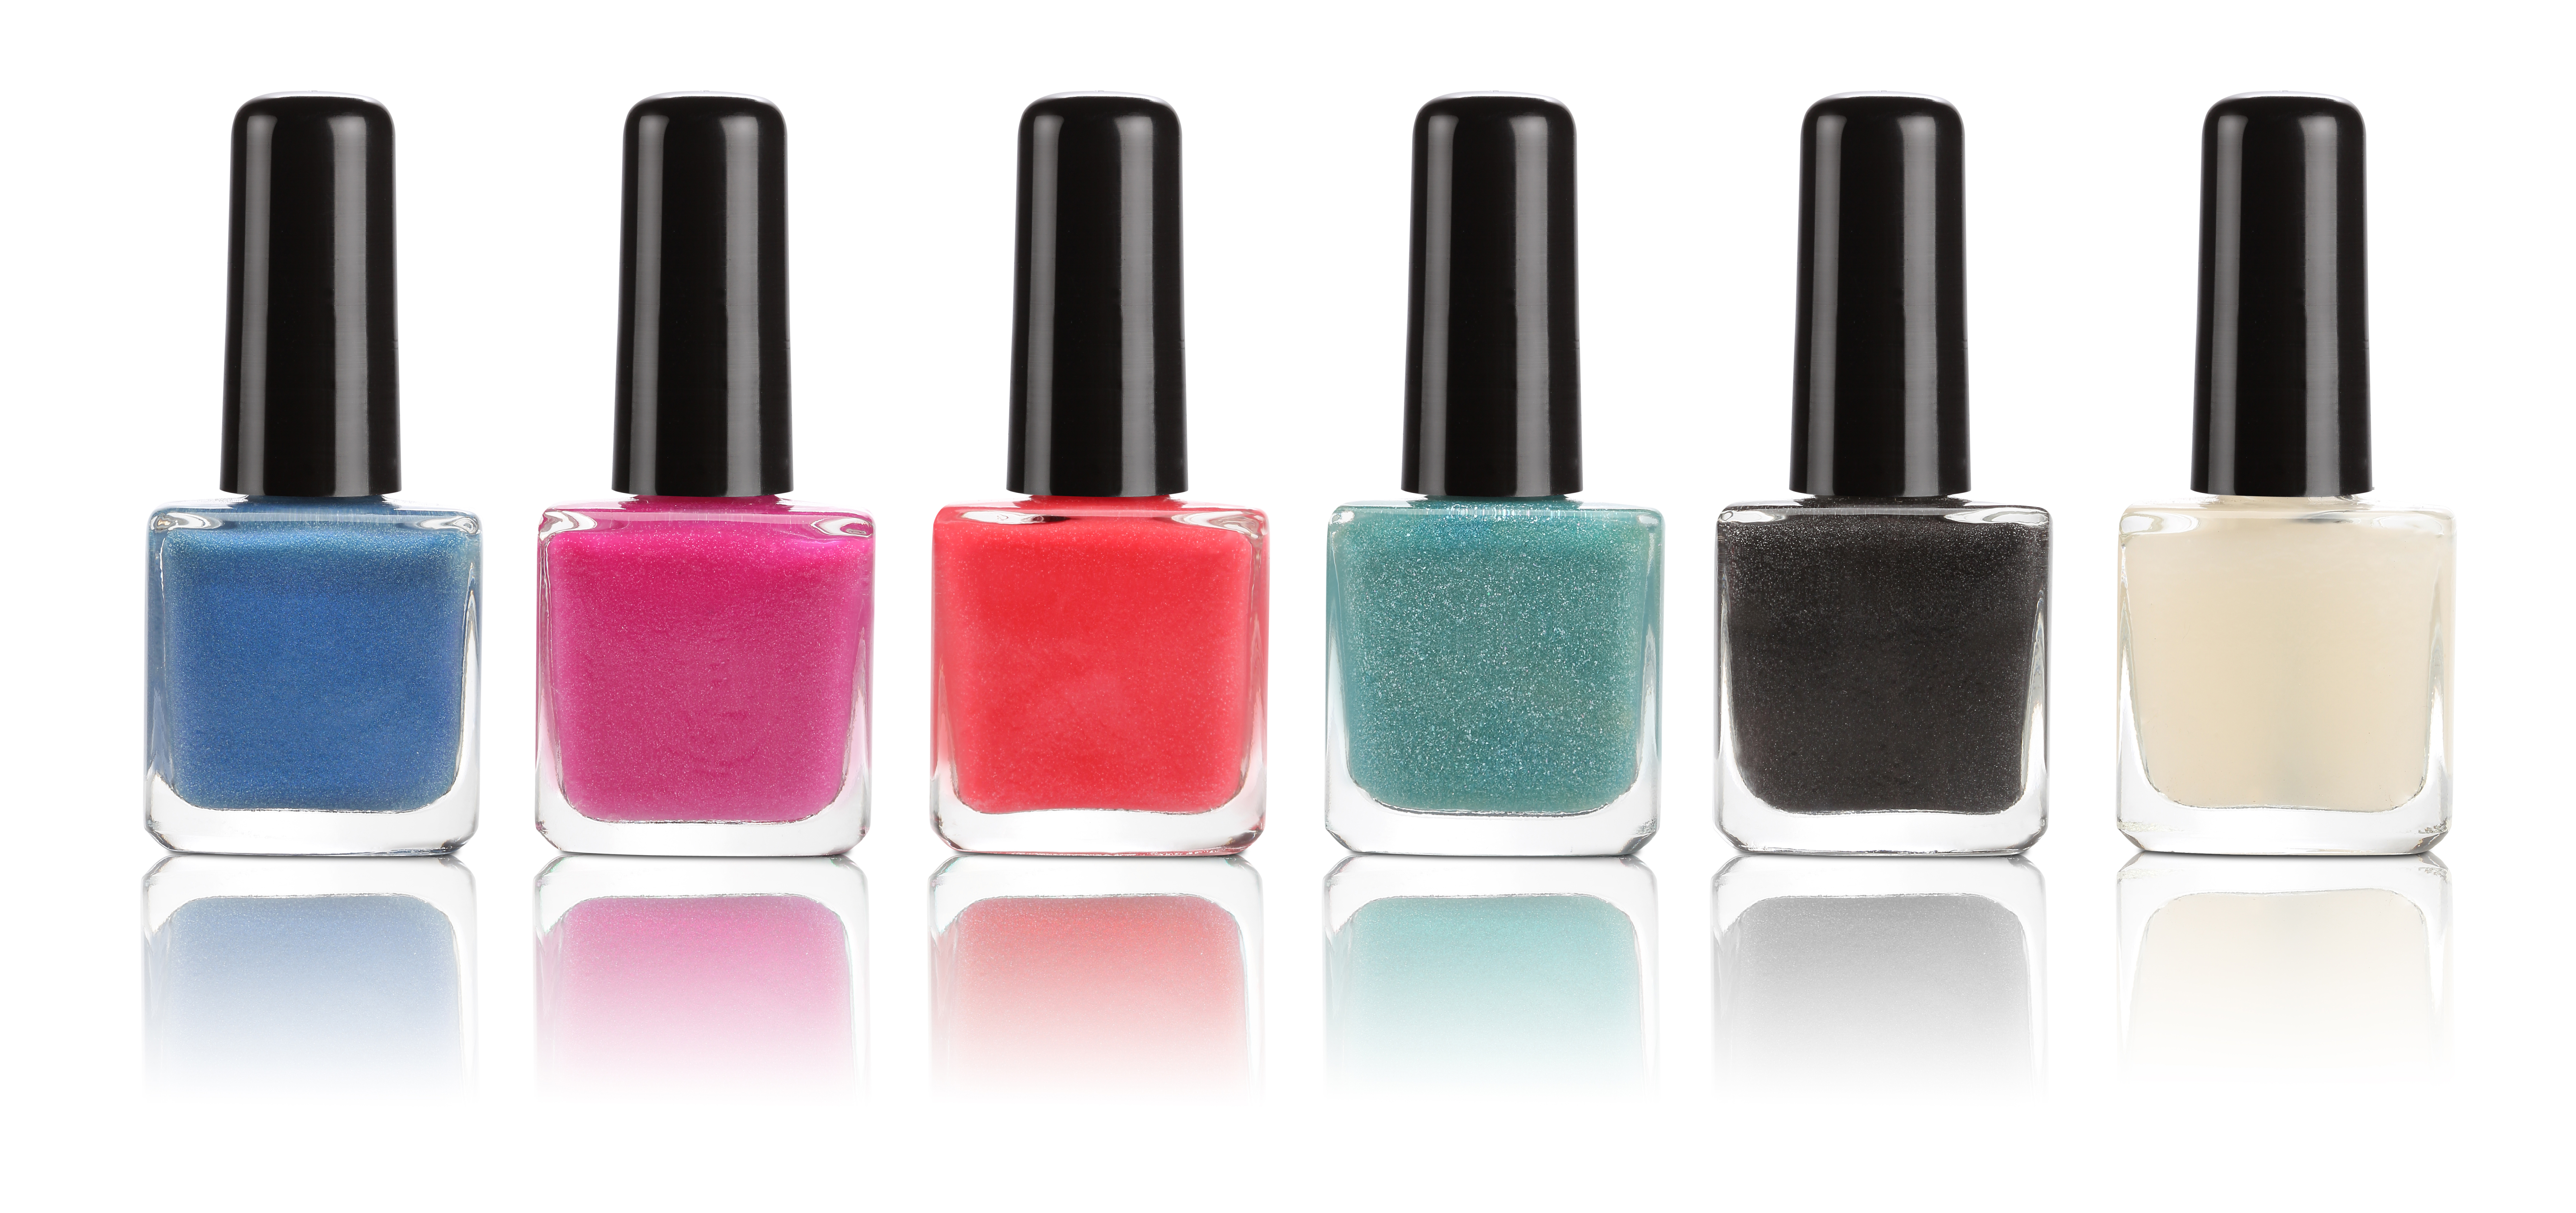 Nail Polish Wallpapers High Quality | Download Free